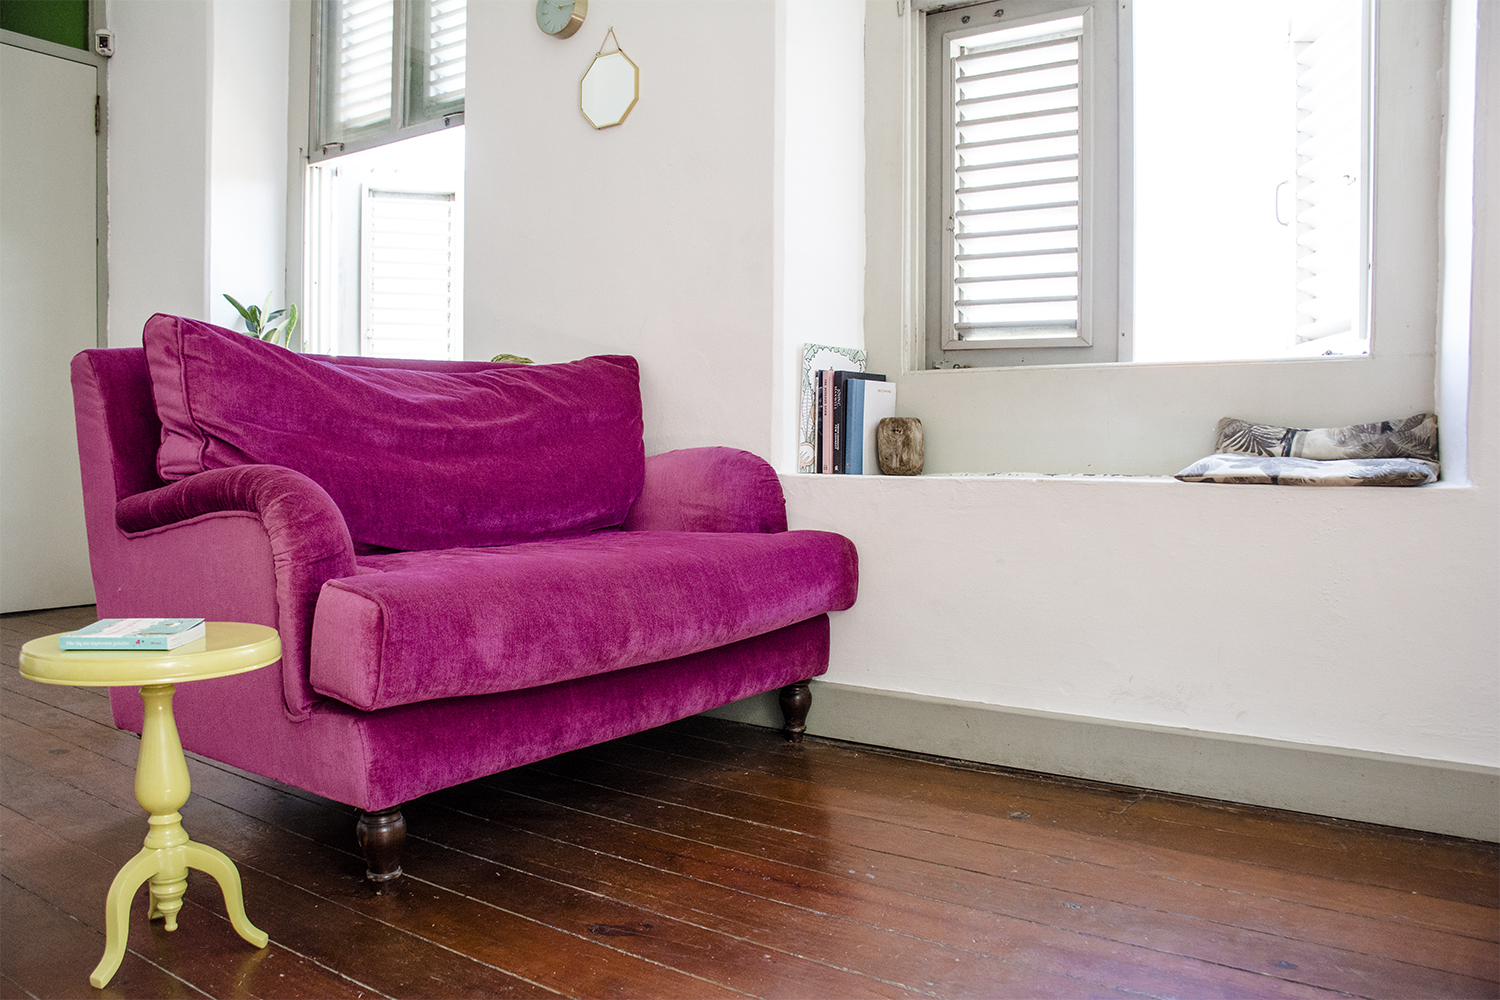 4 ways to add pops of color in your space